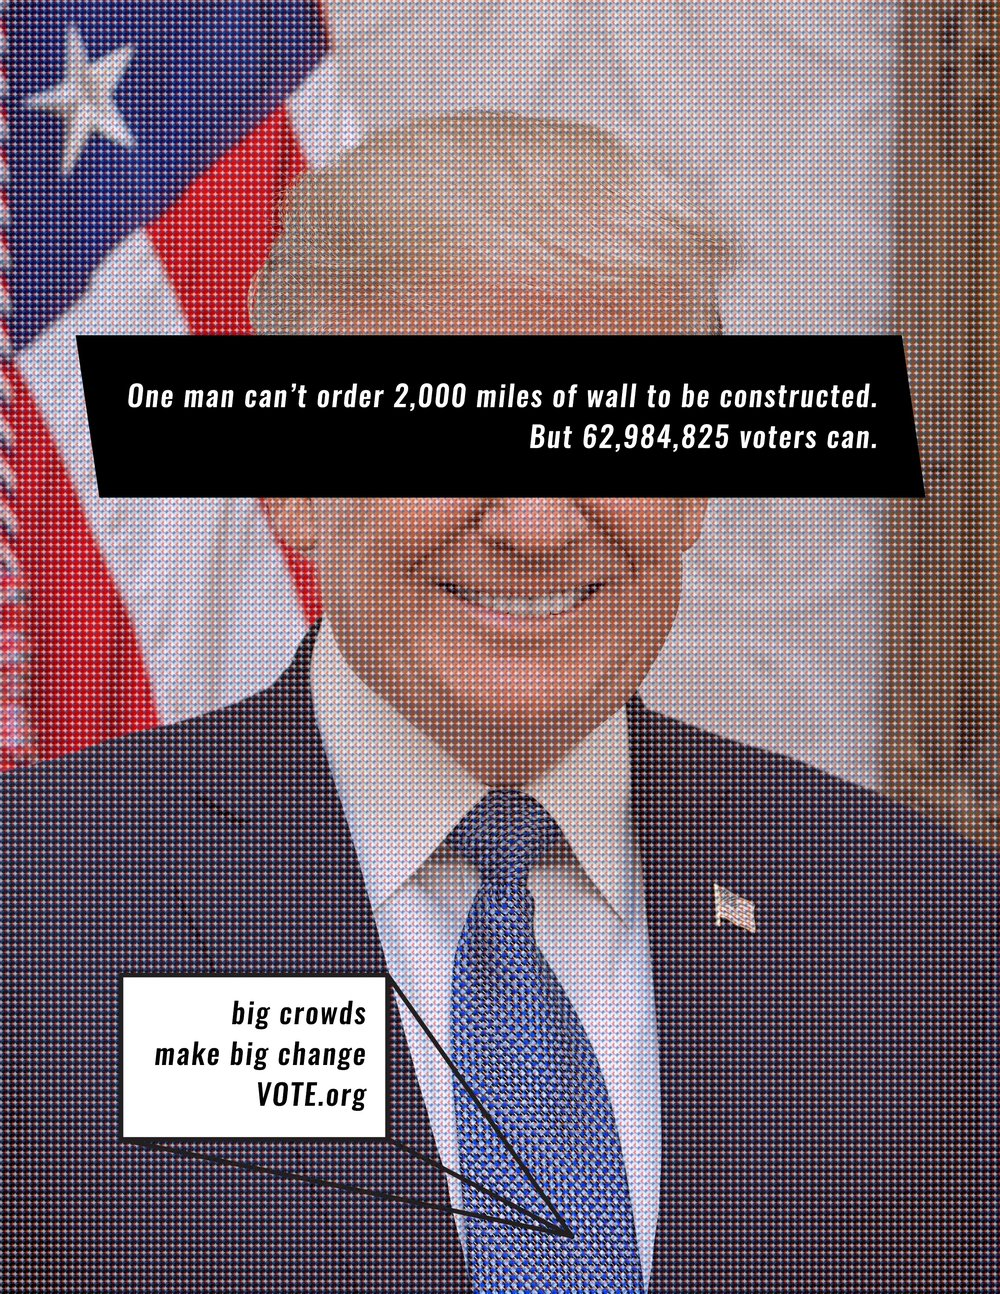 Pixelated Trump.jpg